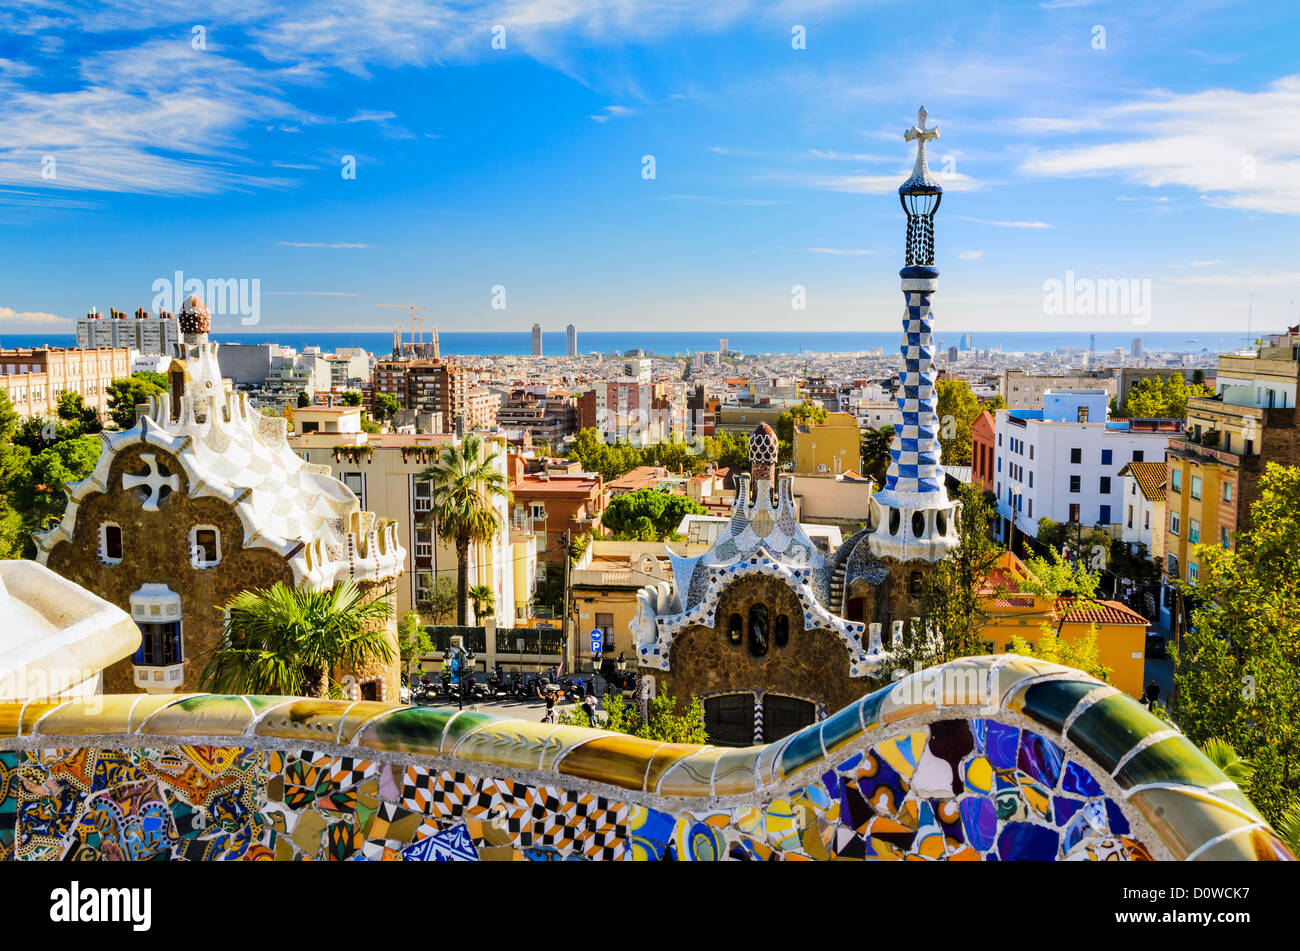 Park Guell in Barcelona, Spain on a sunny day - Stock Image